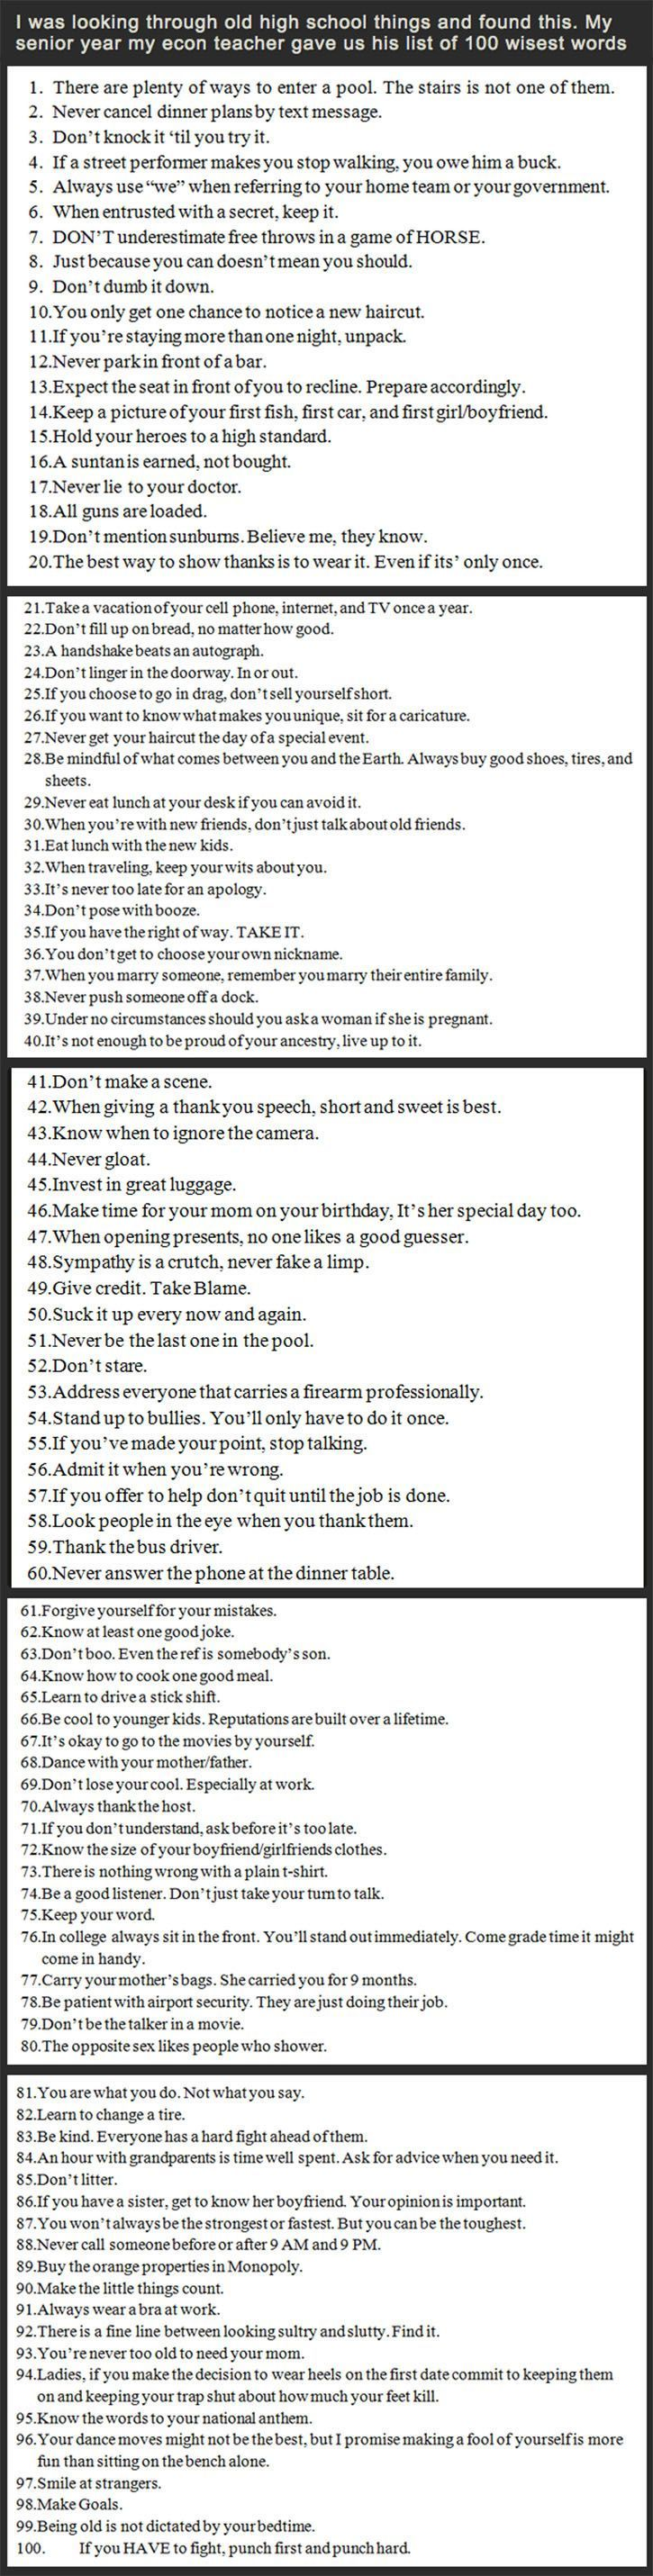 100 Pieces of Life Advice - to high schoolers from an Econ teacher